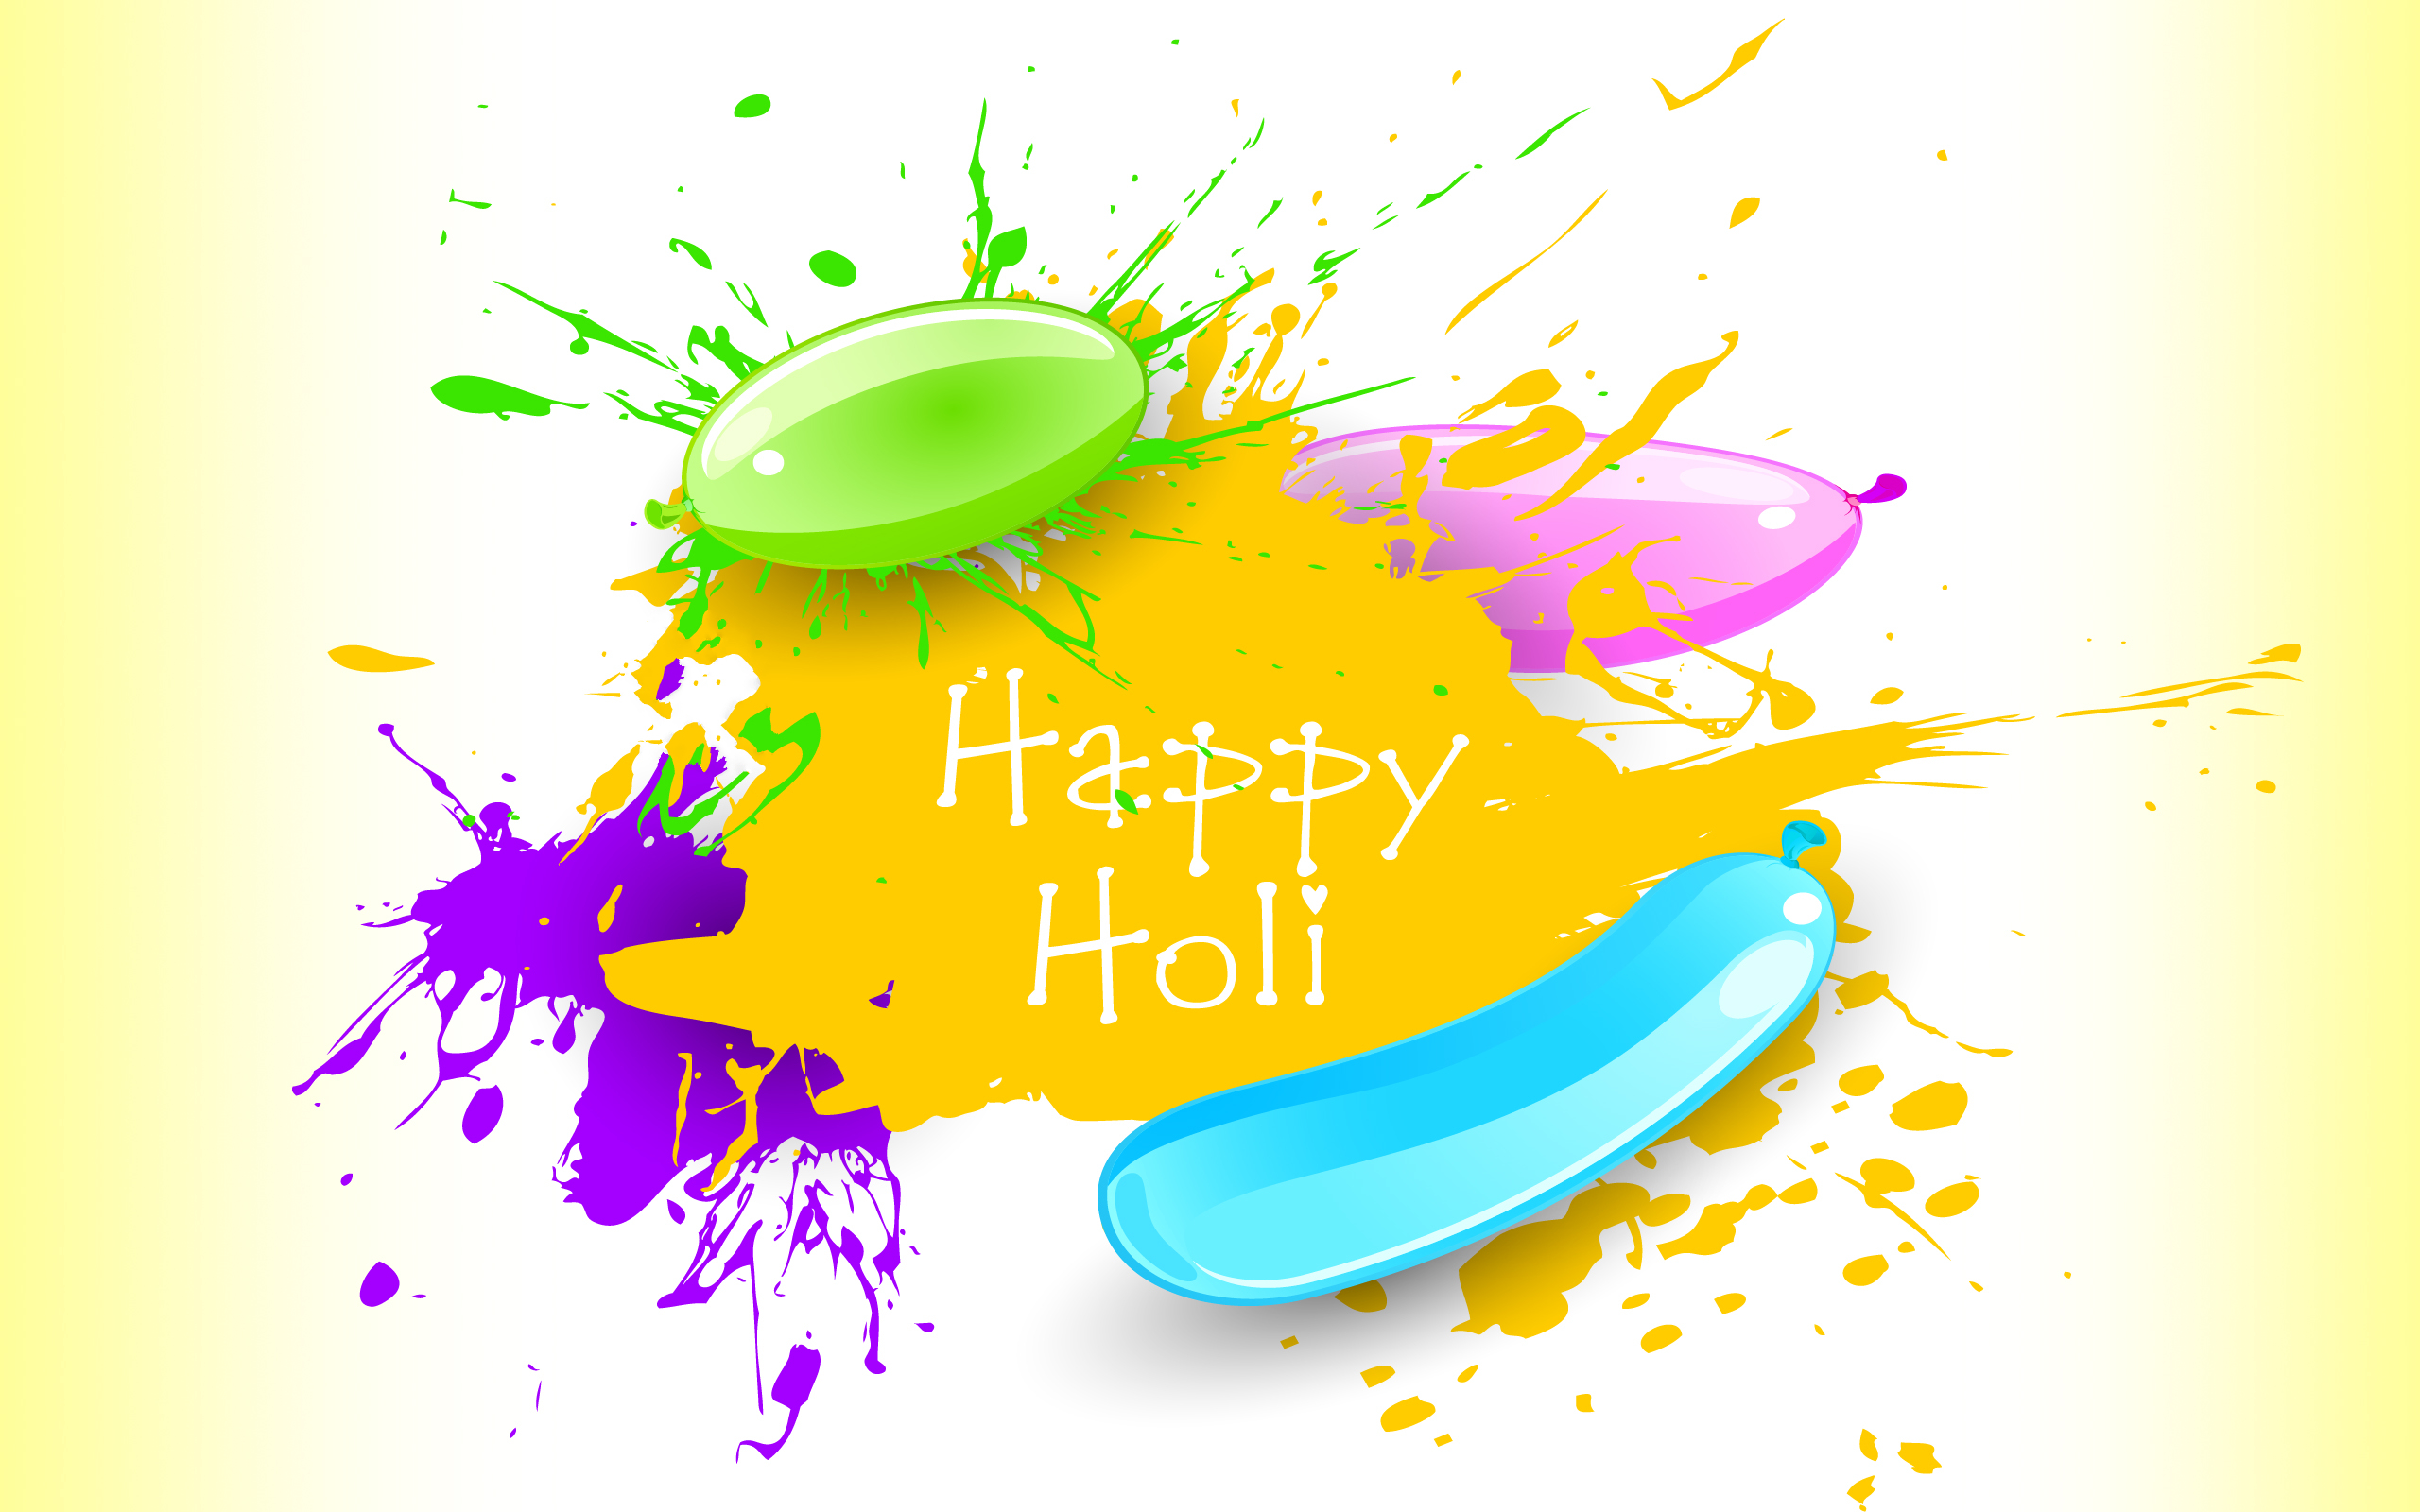 Holi Wallpaper 11   2560 X 1600 stmednet 2560x1600